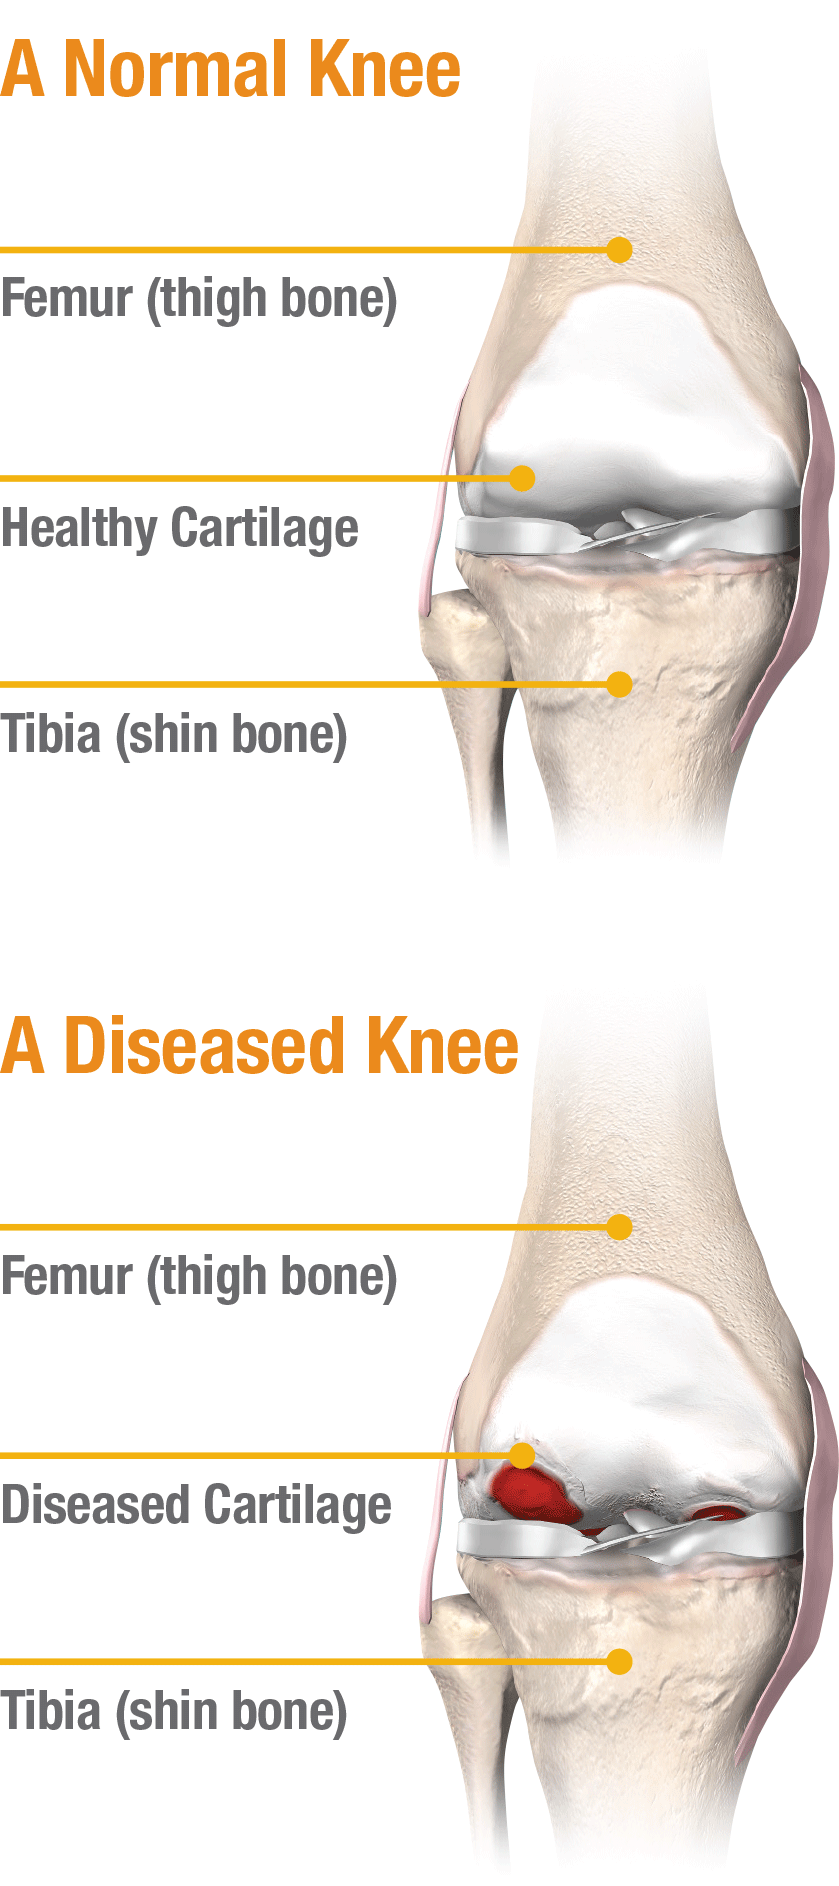 Knee norm diseased